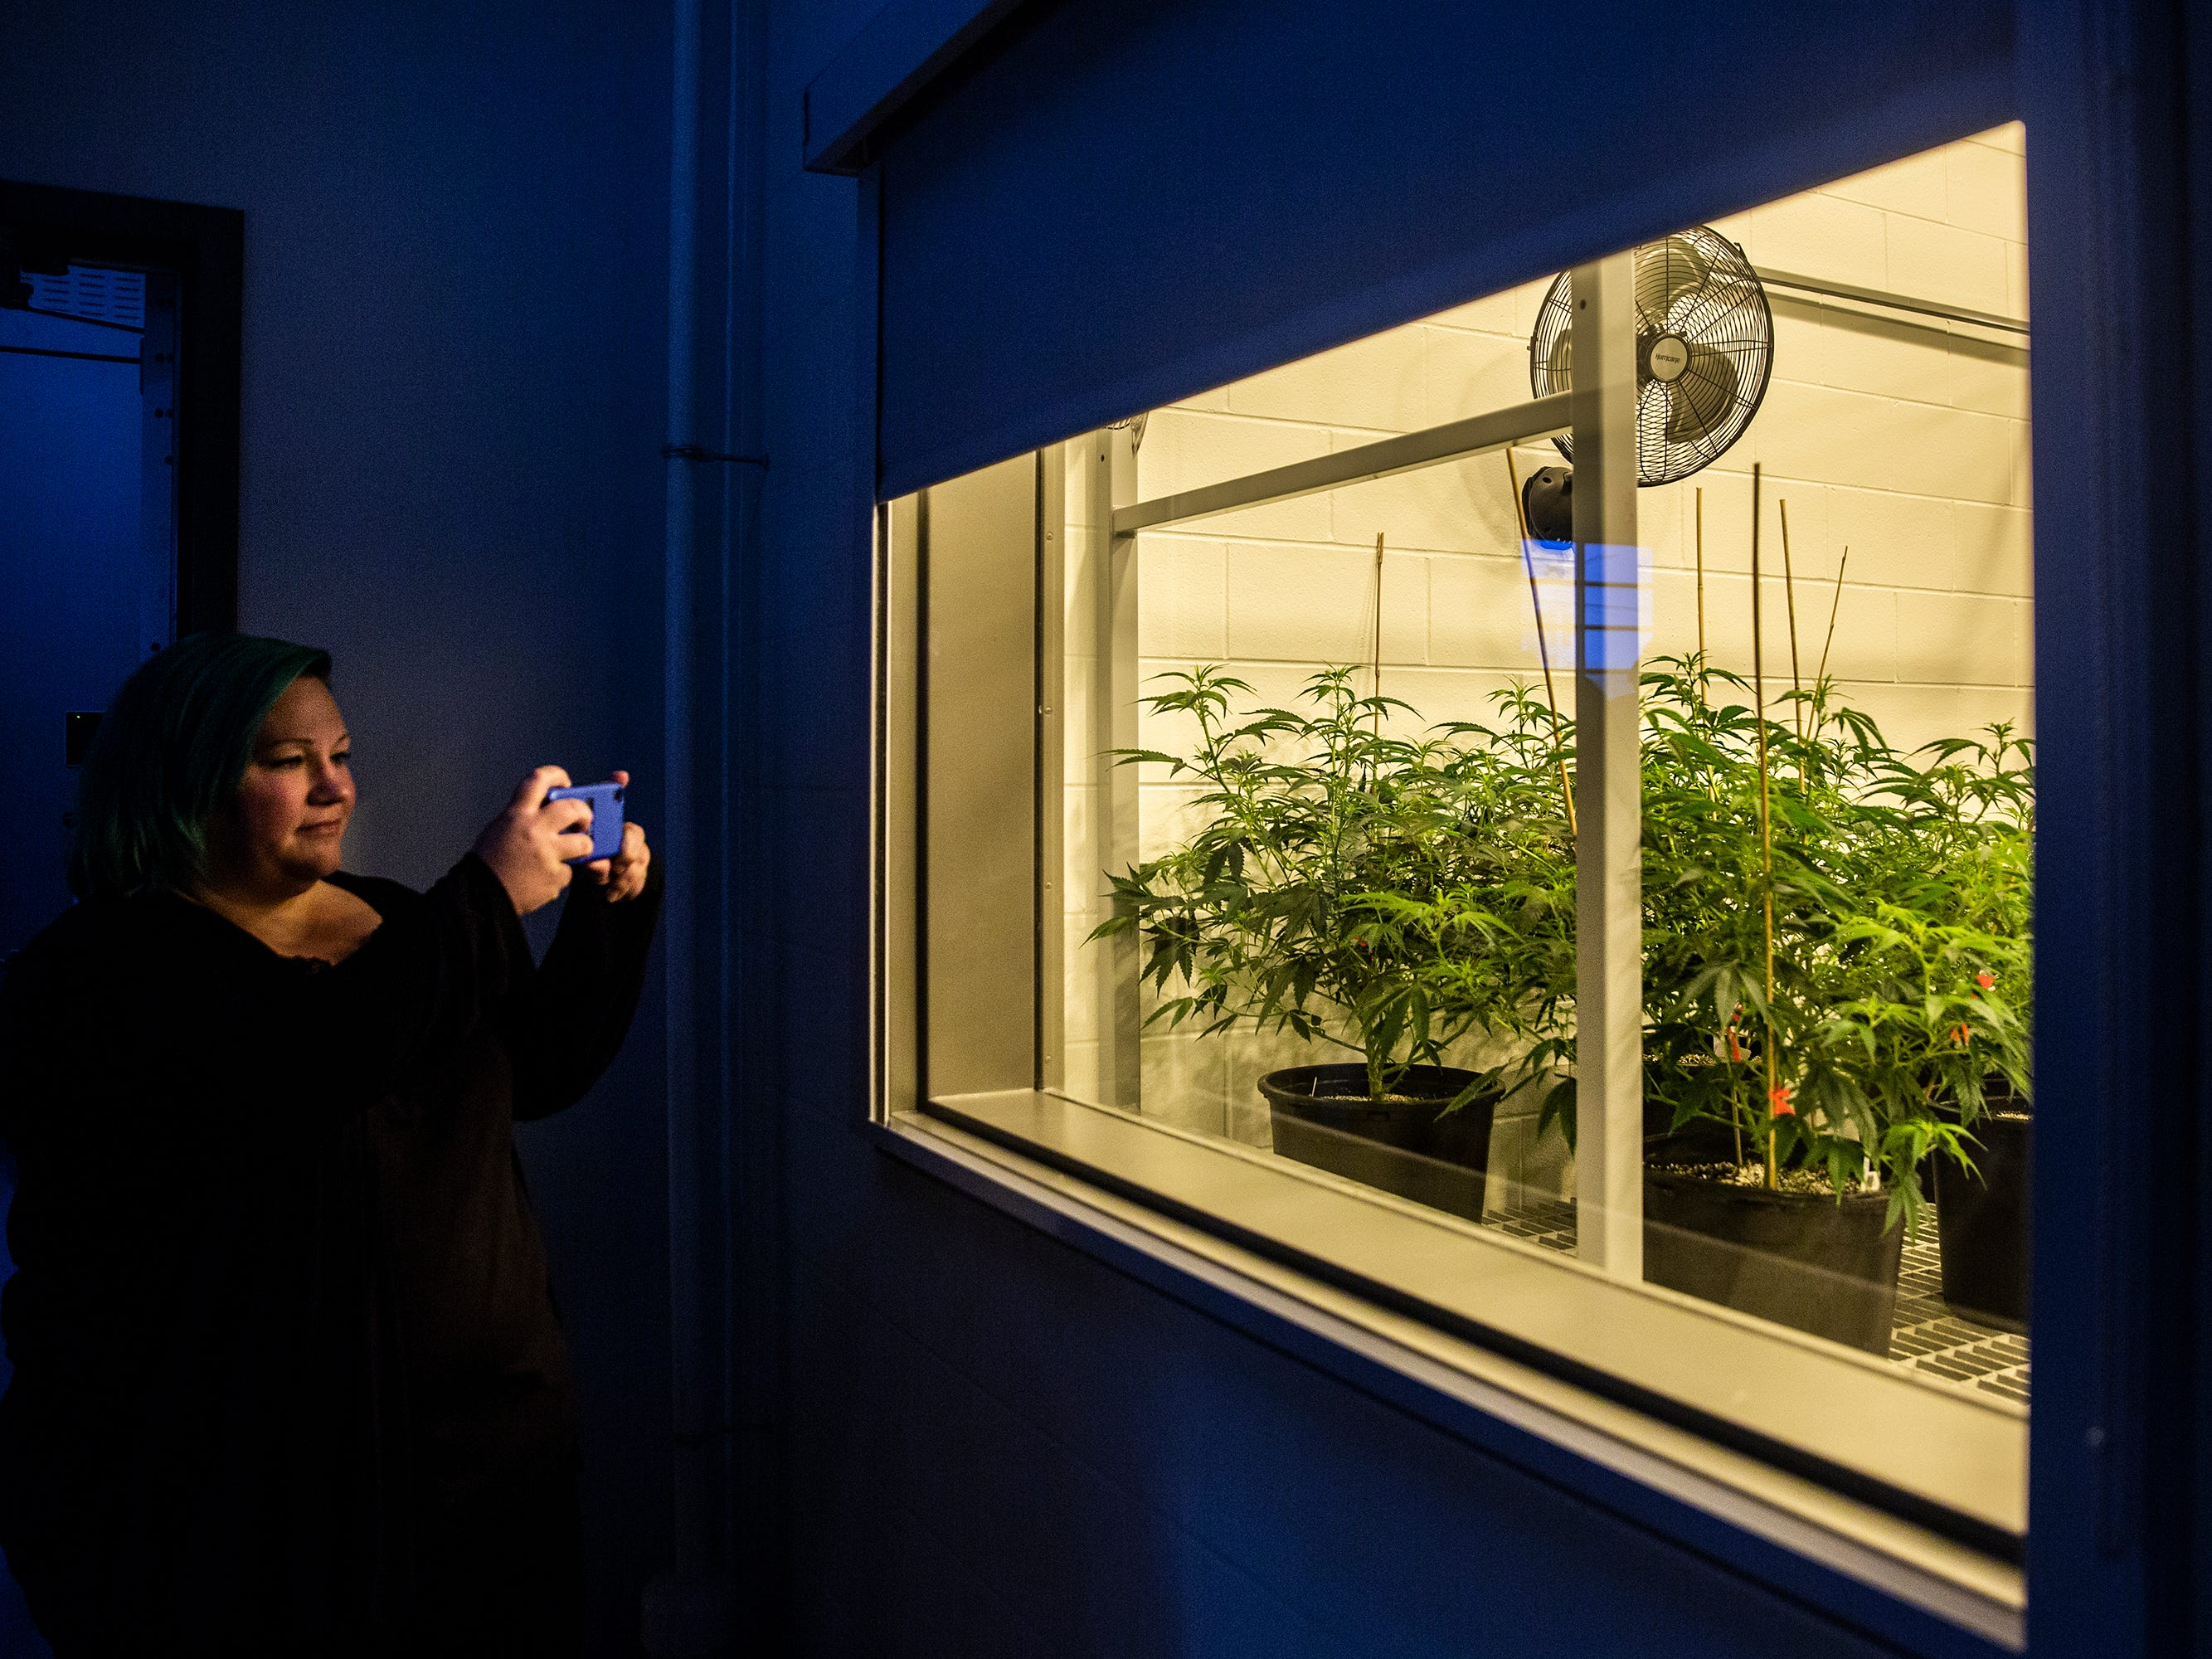 Erin Bollman, of Dallas Center, and an advocate for the use of medical-marijuana, takes a photo of one of the growing rooms inside Iowa's first facility for the production of medical-marijuana, MedPharm Iowa, during a ribbon cutting event on Thursday, Nov. 1, 2018, in Des Moines.